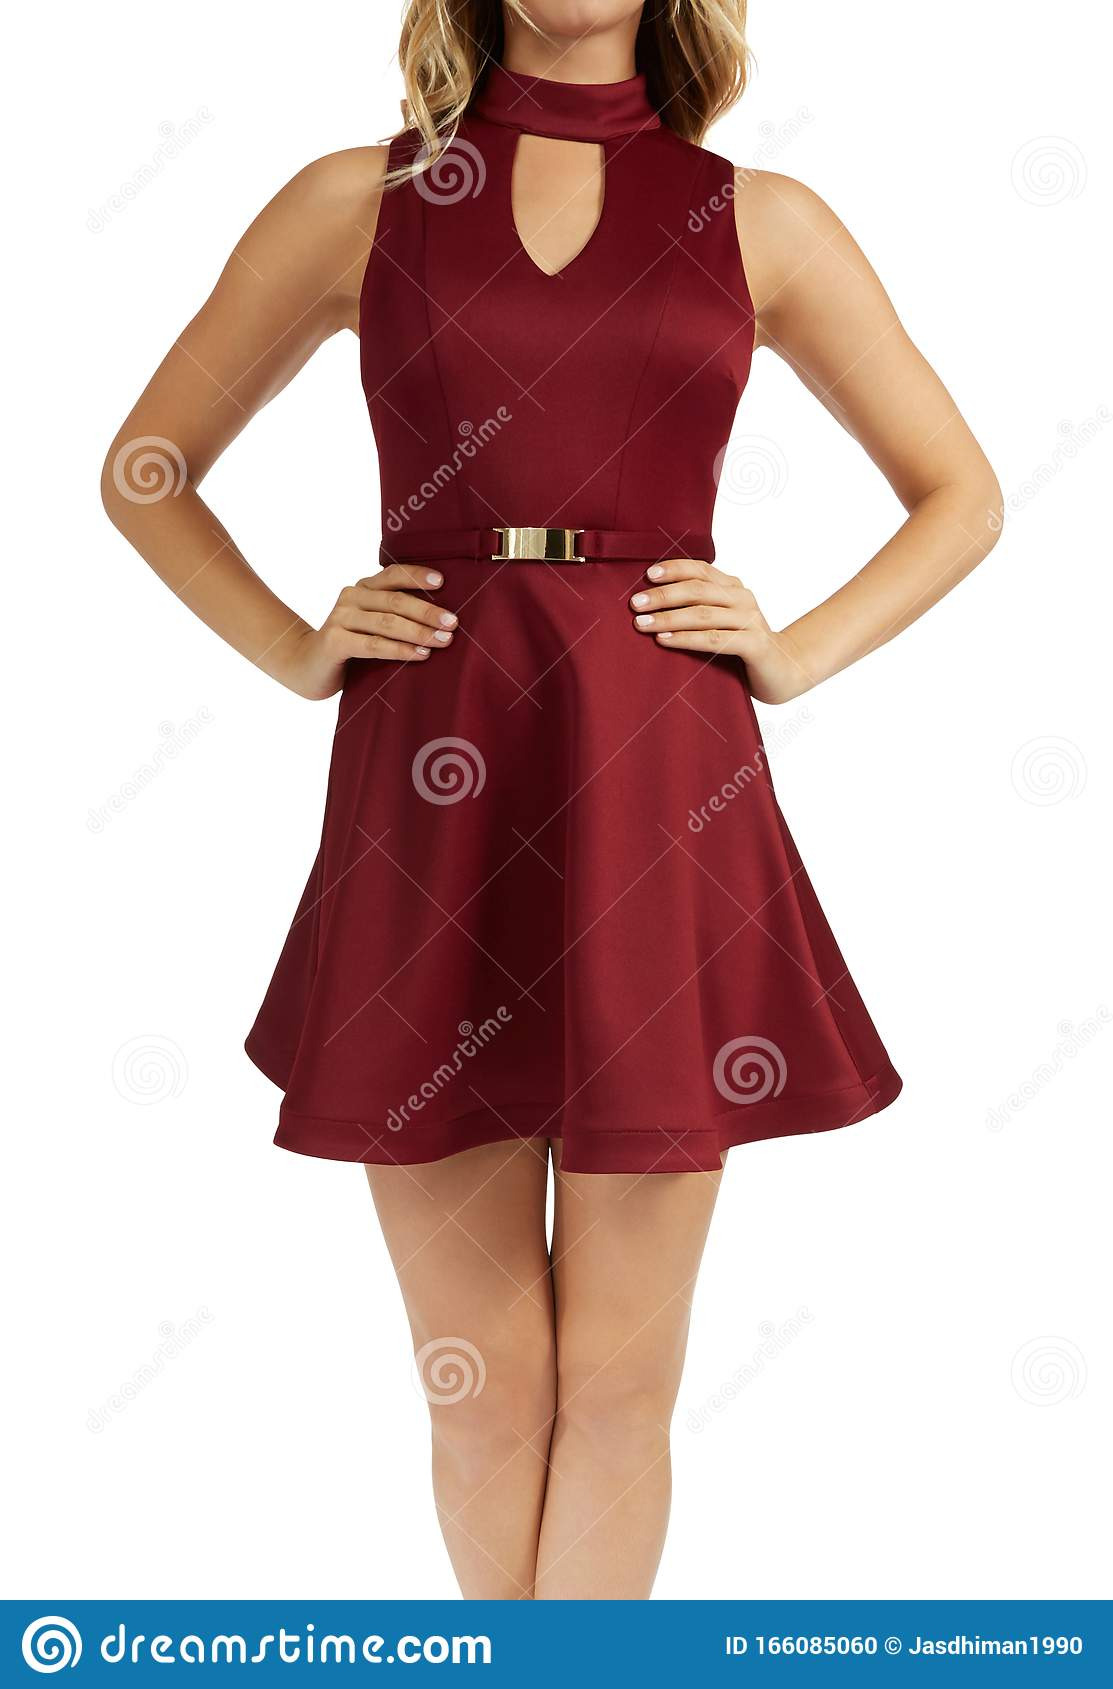 Elegant Red One Piece Sleeveless Dress With Flared Bottom With White Background Latest Design Short Frocks For Girl San Stock Photo Image Of Heels Manager 166085060